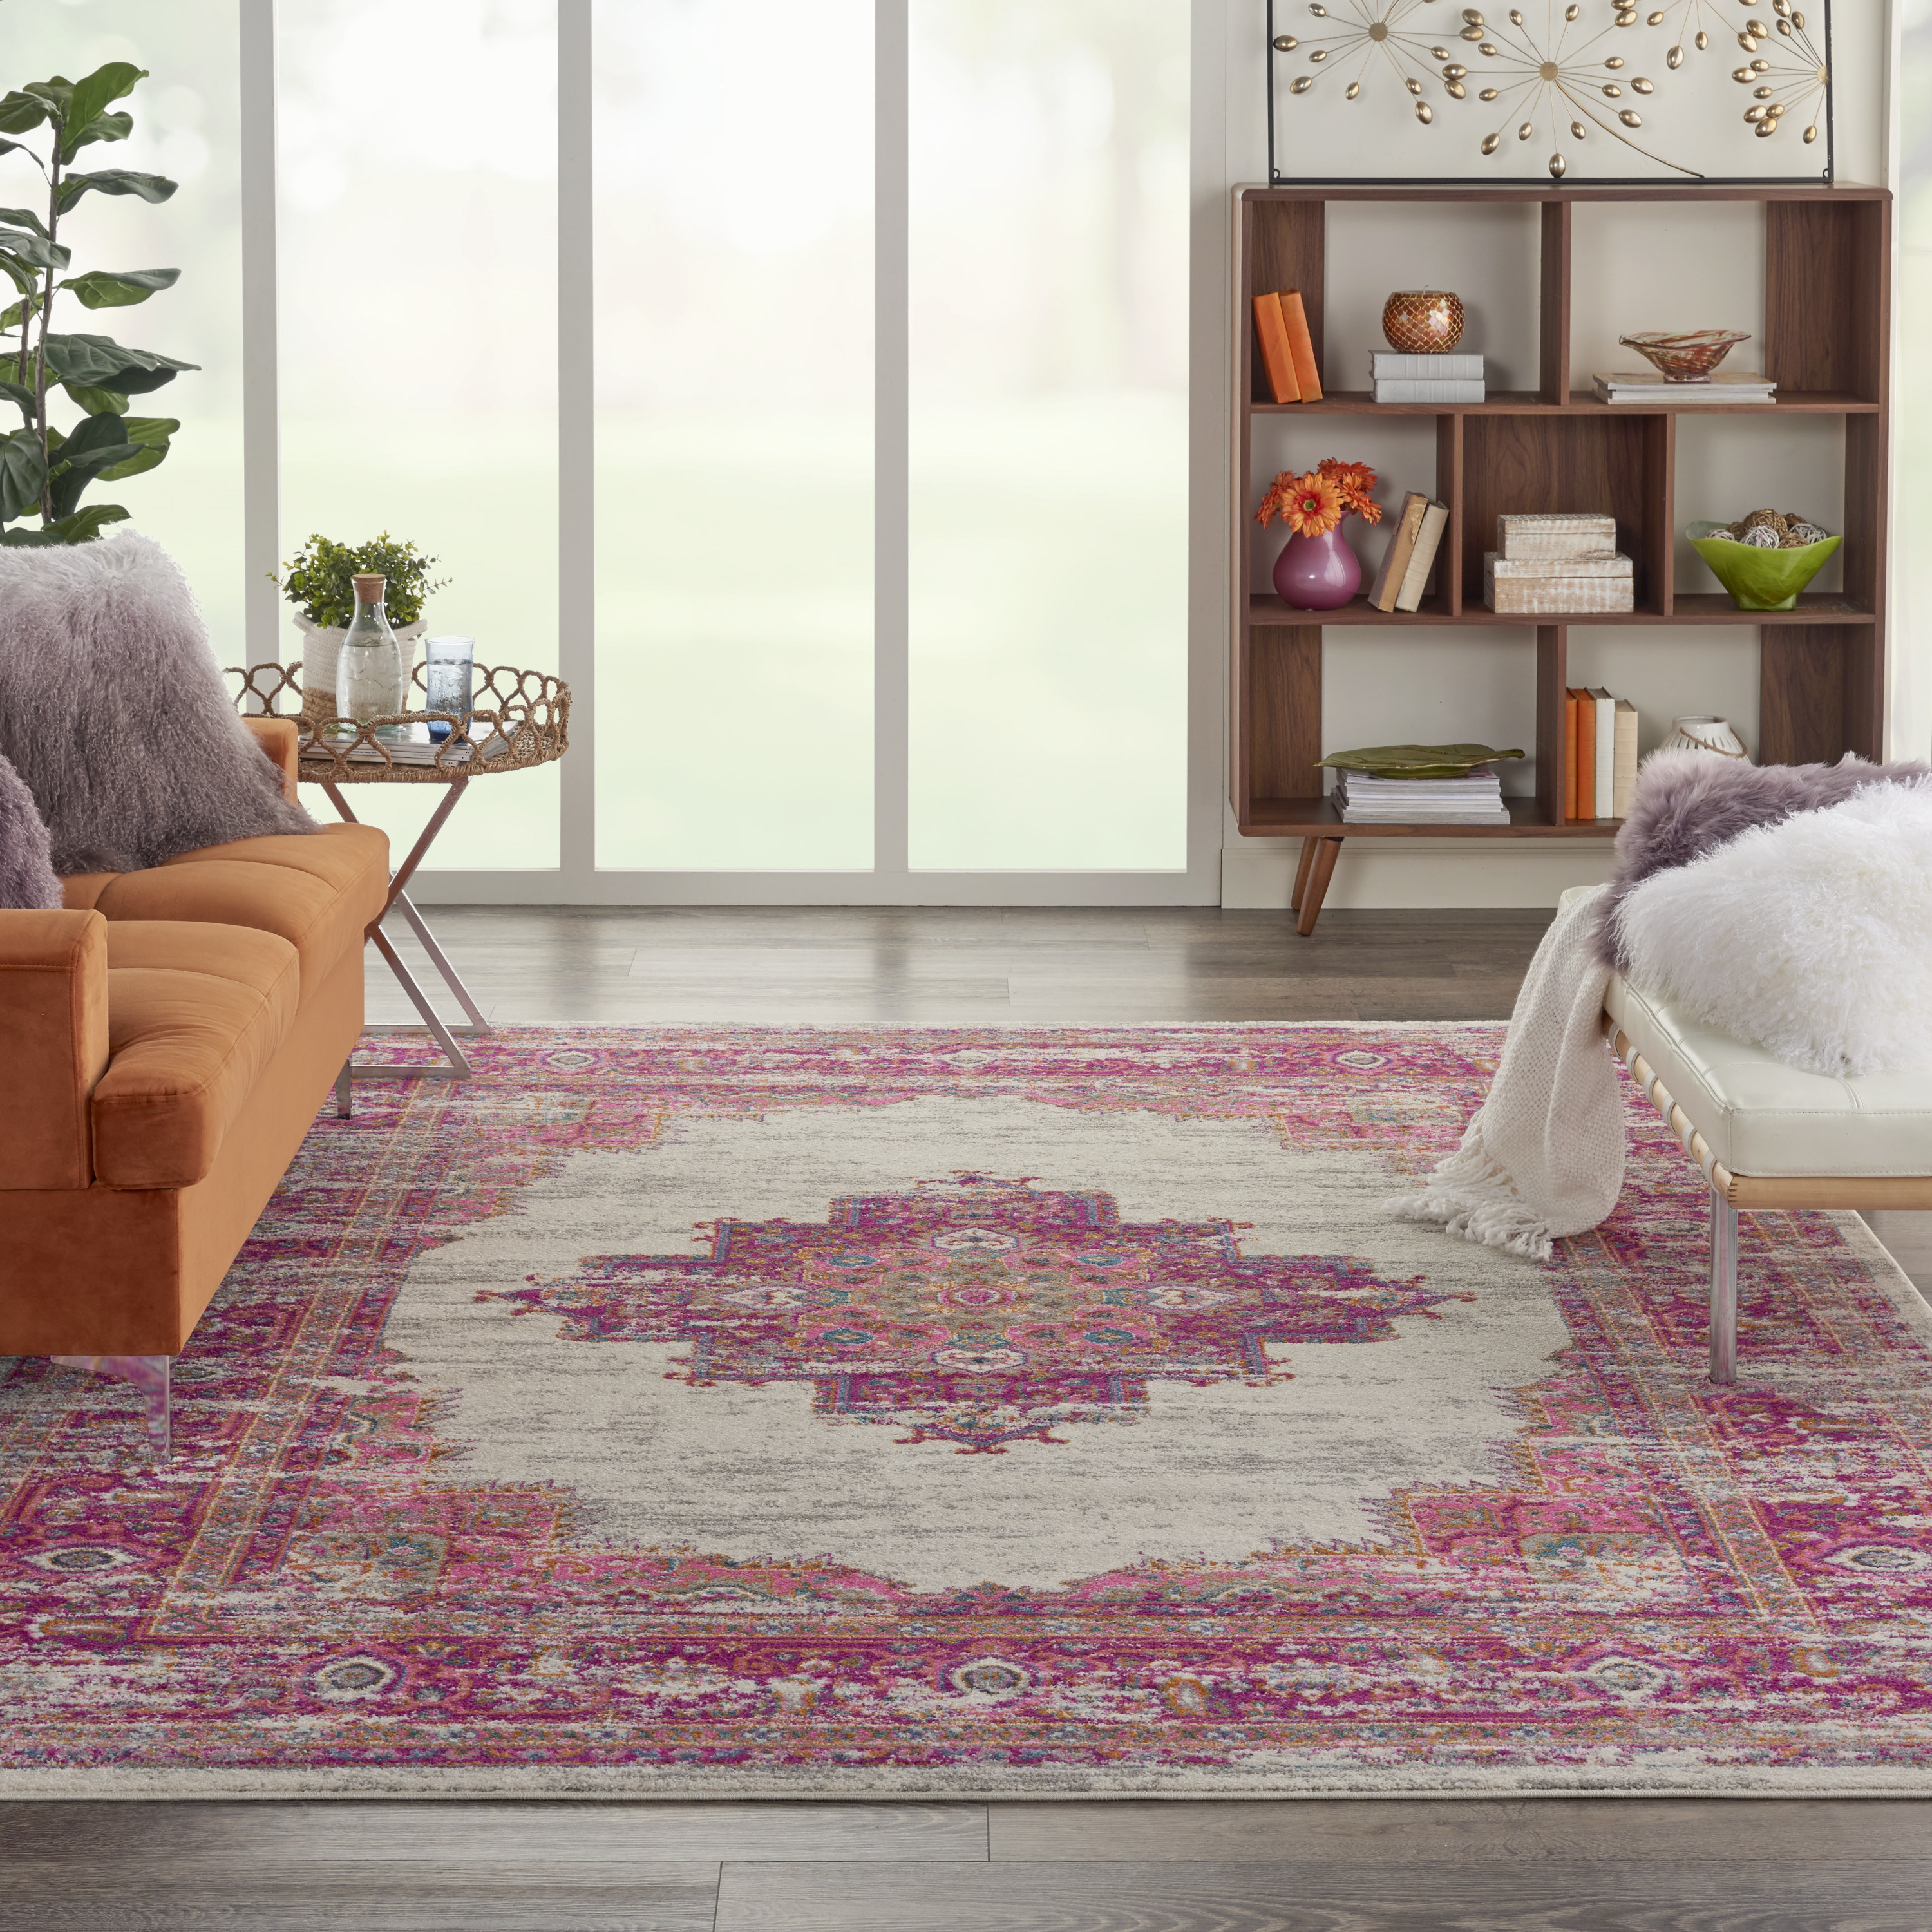 pink area rug sitting in a living room